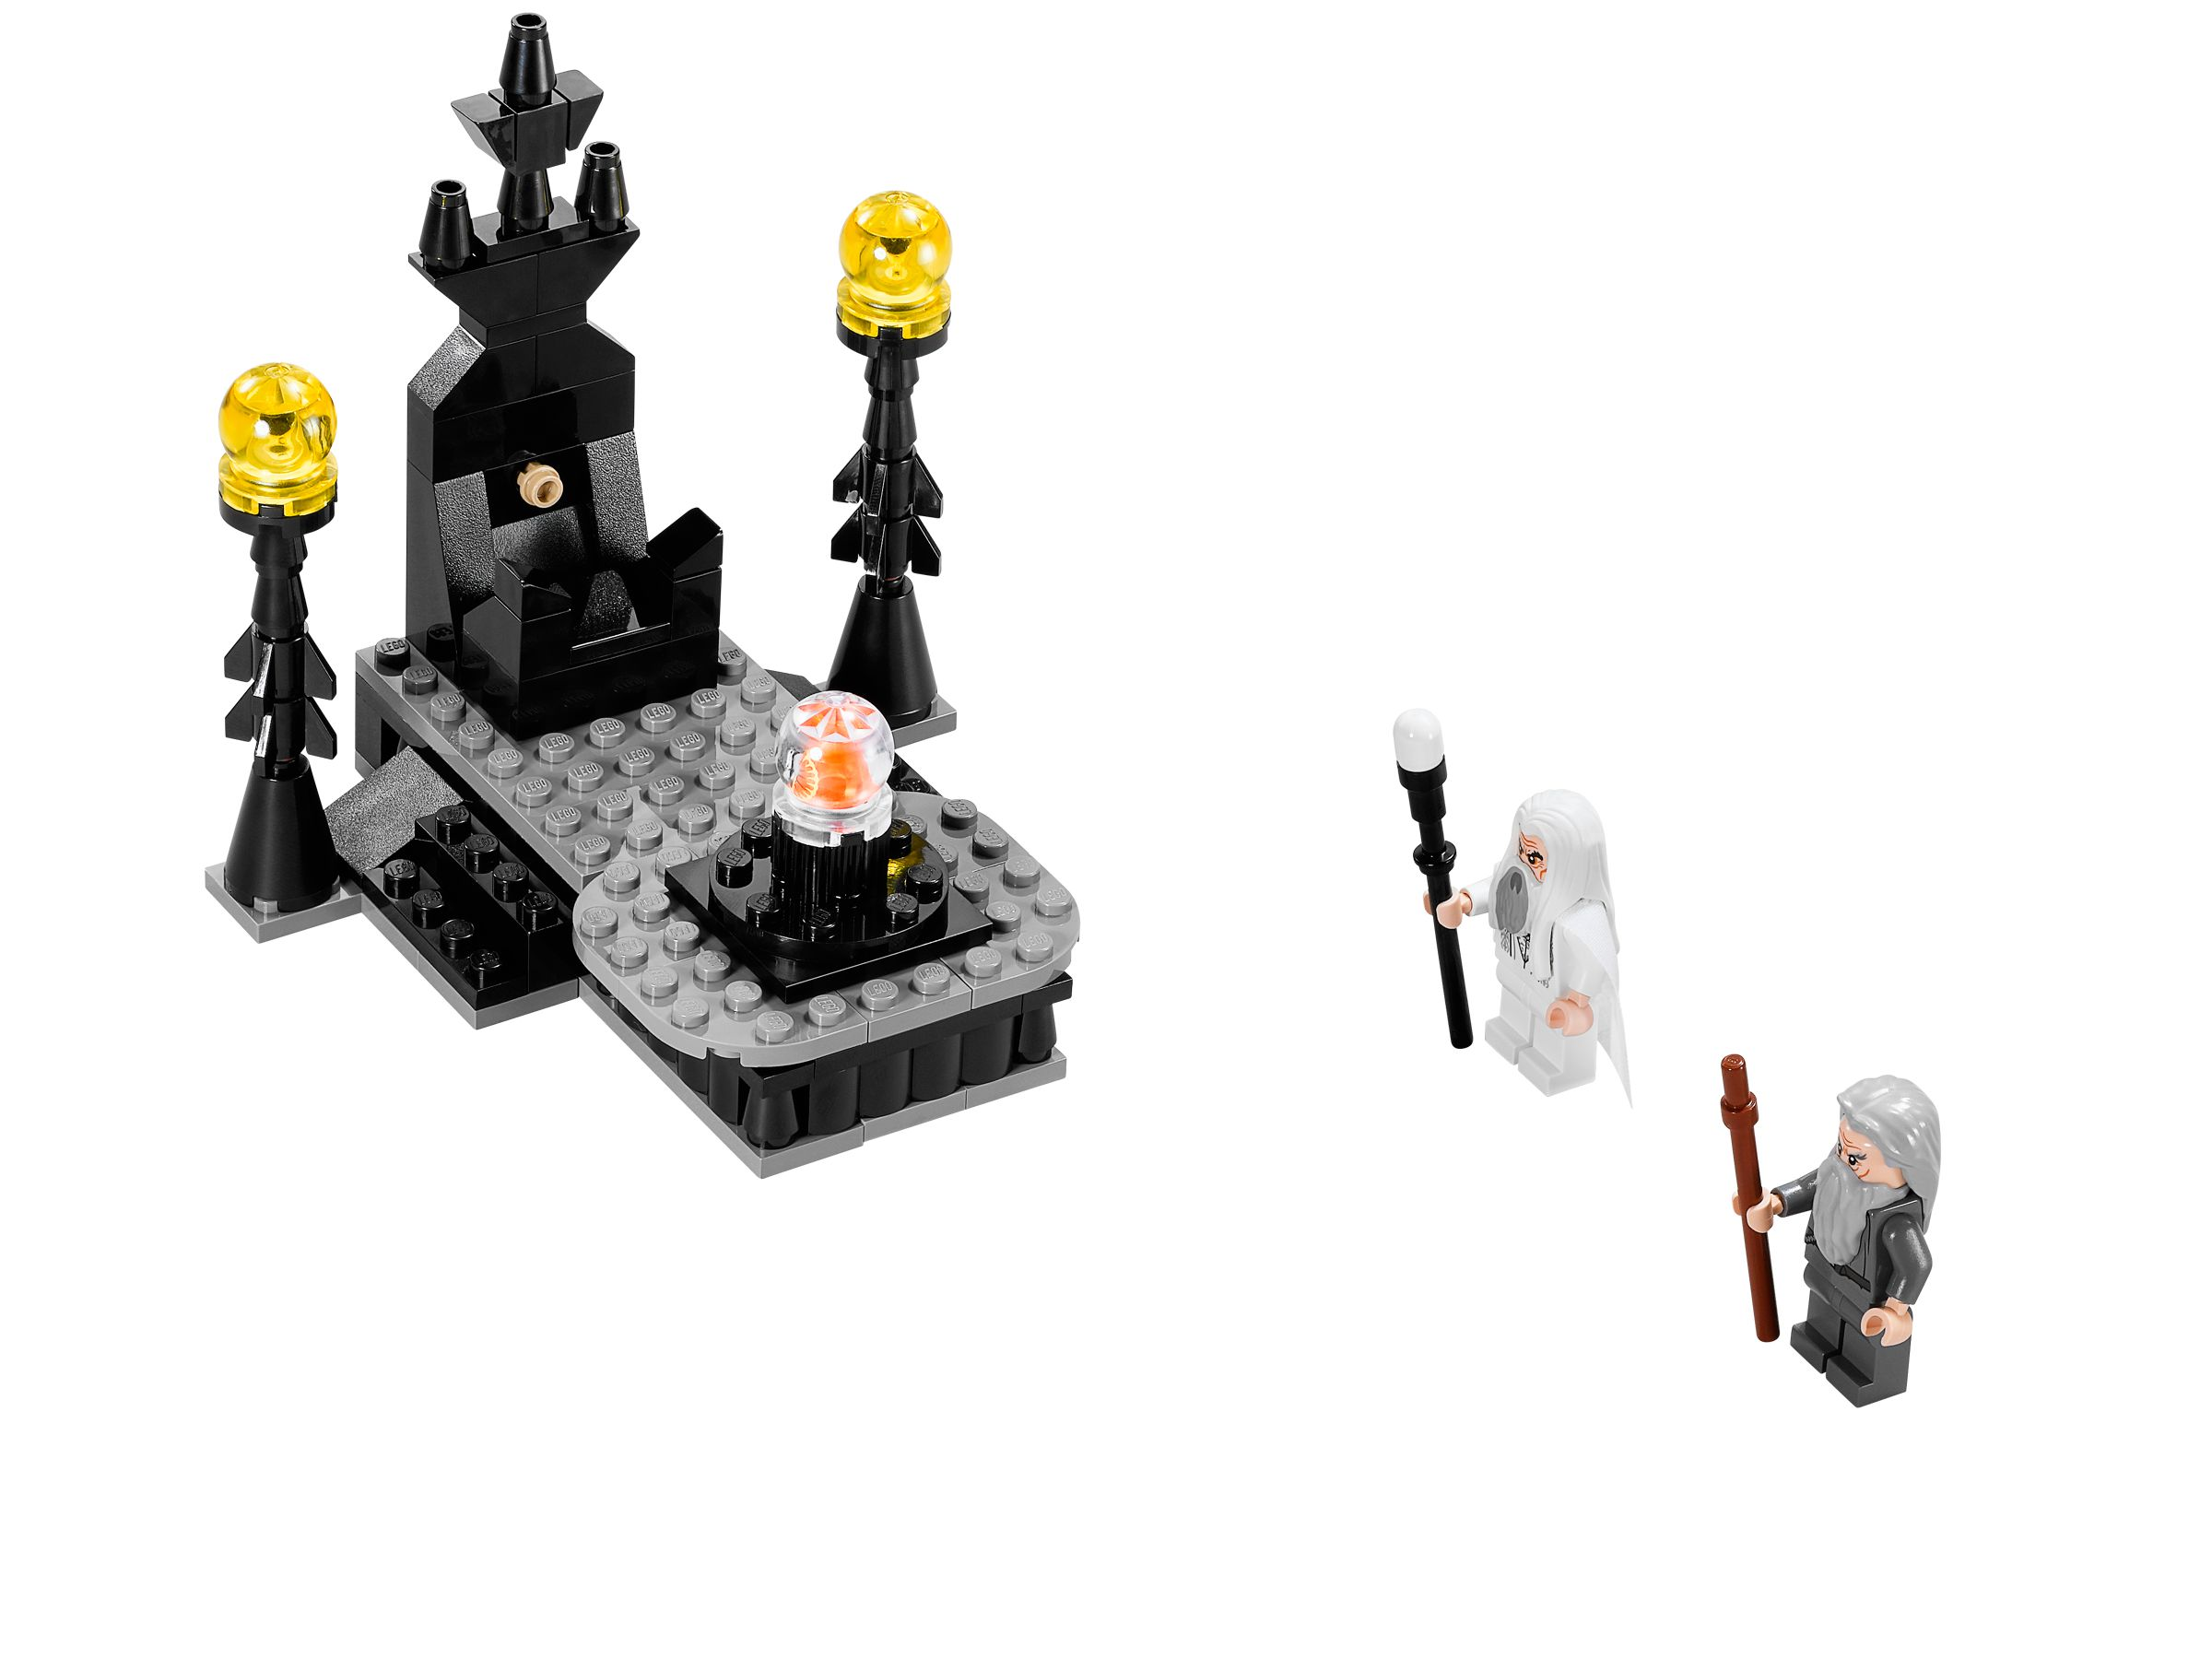 LEGO Lord of the Rings 79005 Duell der Zauberer LEGO_79005.jpg